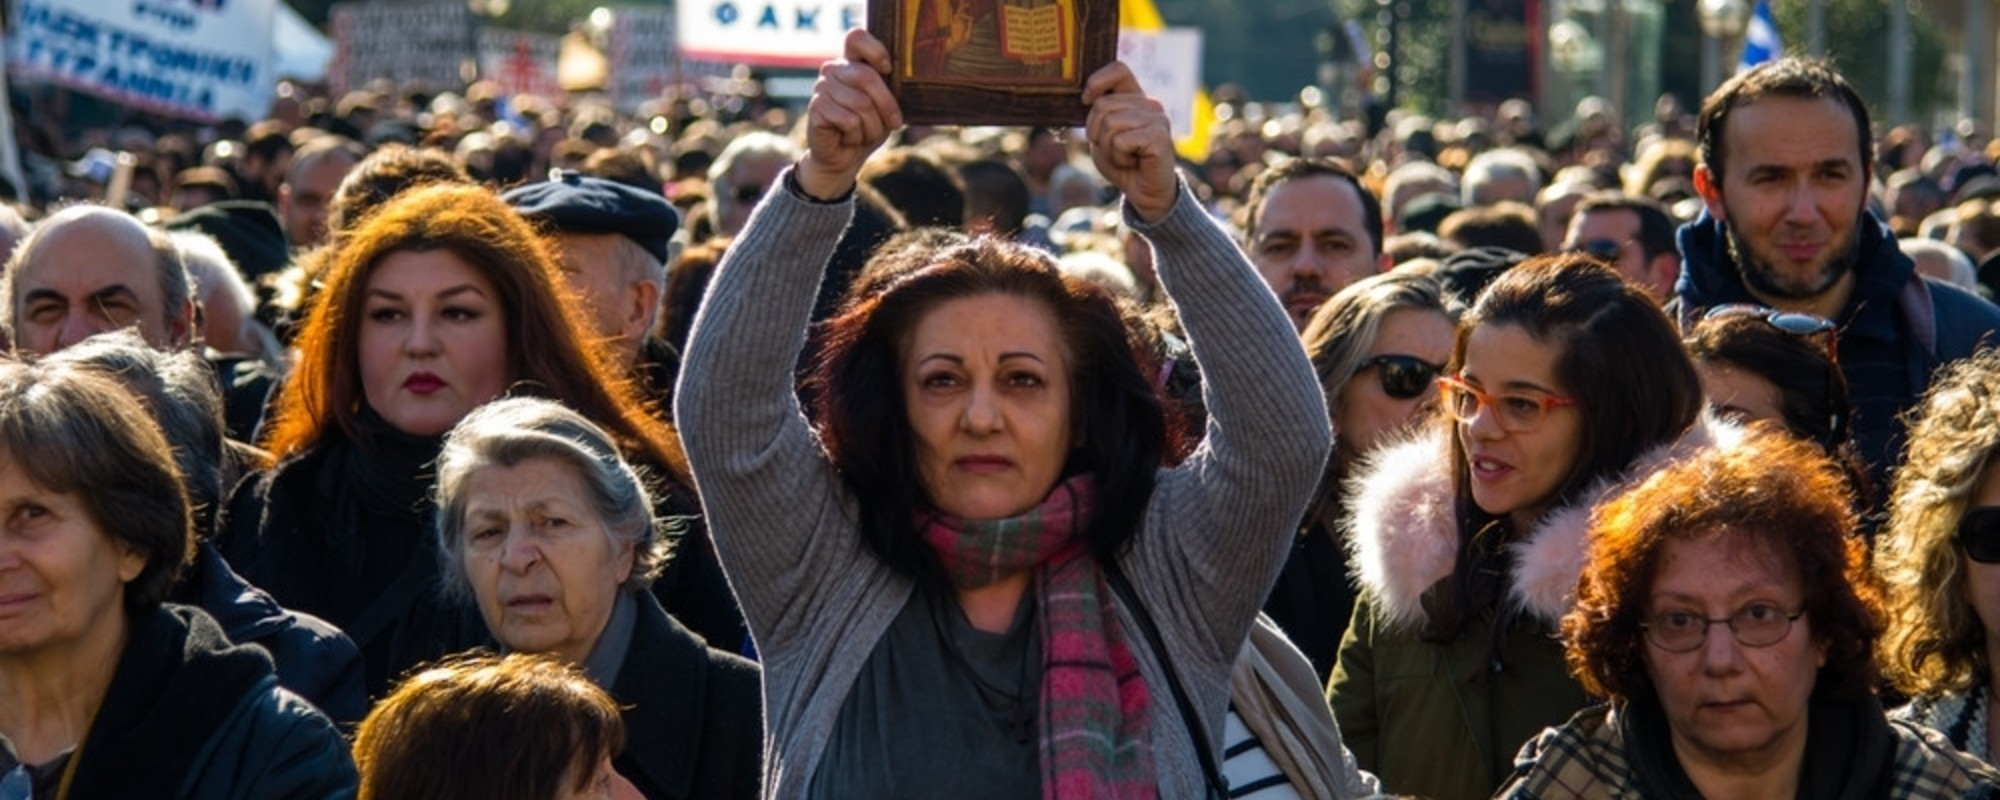 Photos of Greek Christians, Conspiracy Theorists and Neo-Nazis Protesting Their New ID Cards